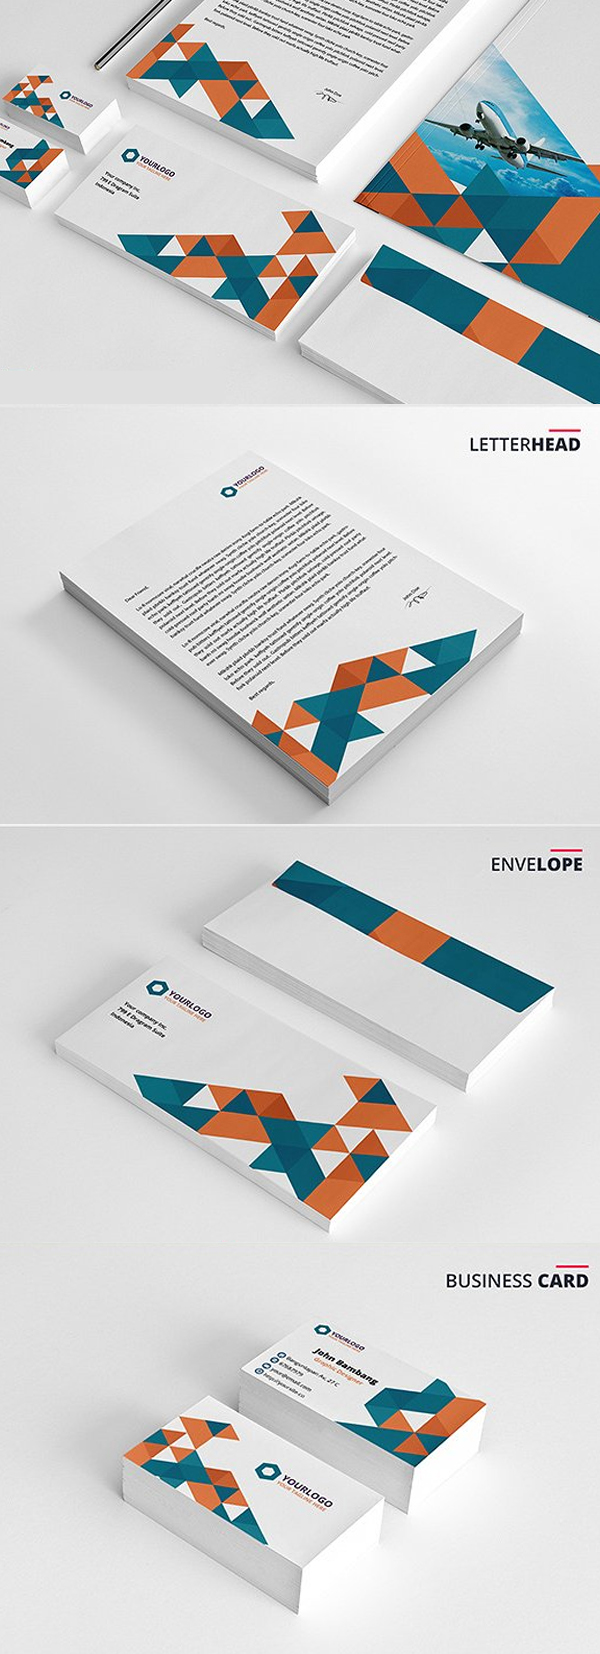 Modern Business Branding / Stationery Templates Design - 14